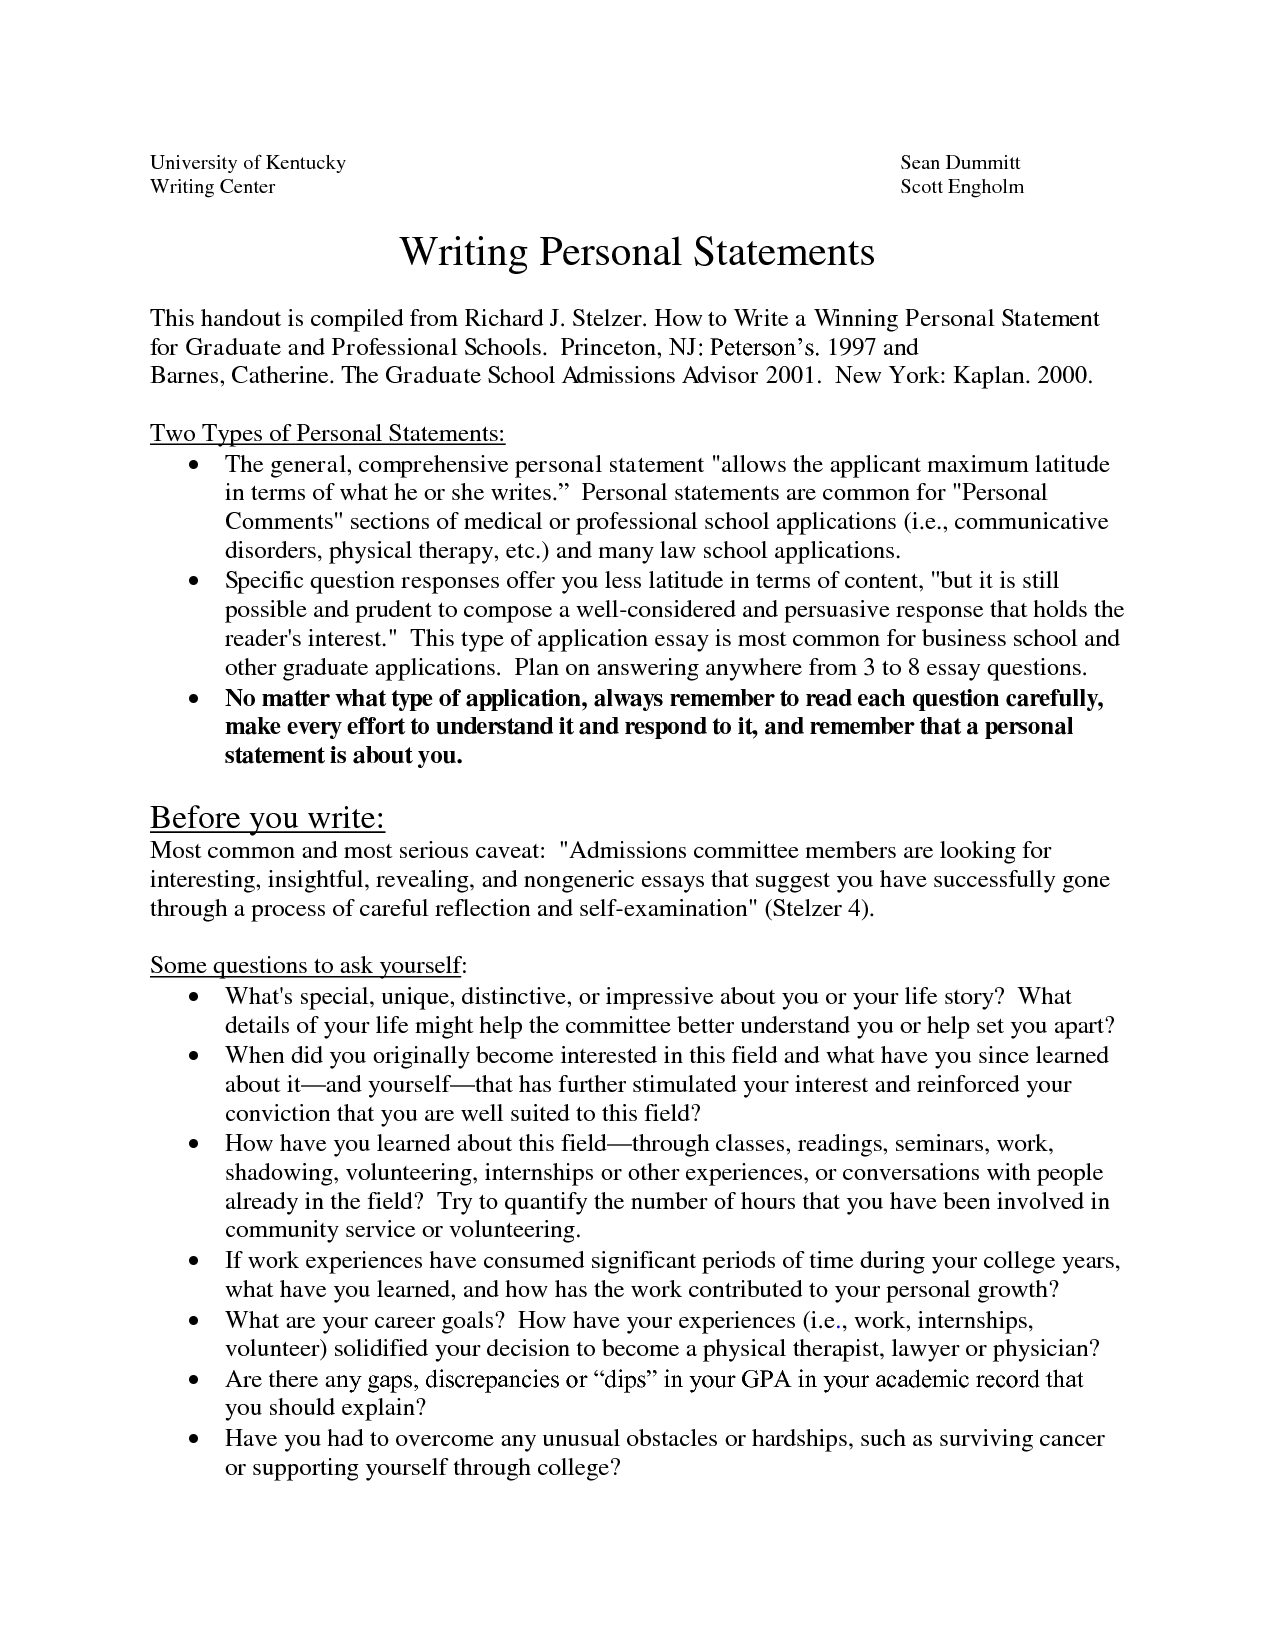 free sample essay for graduate school admission